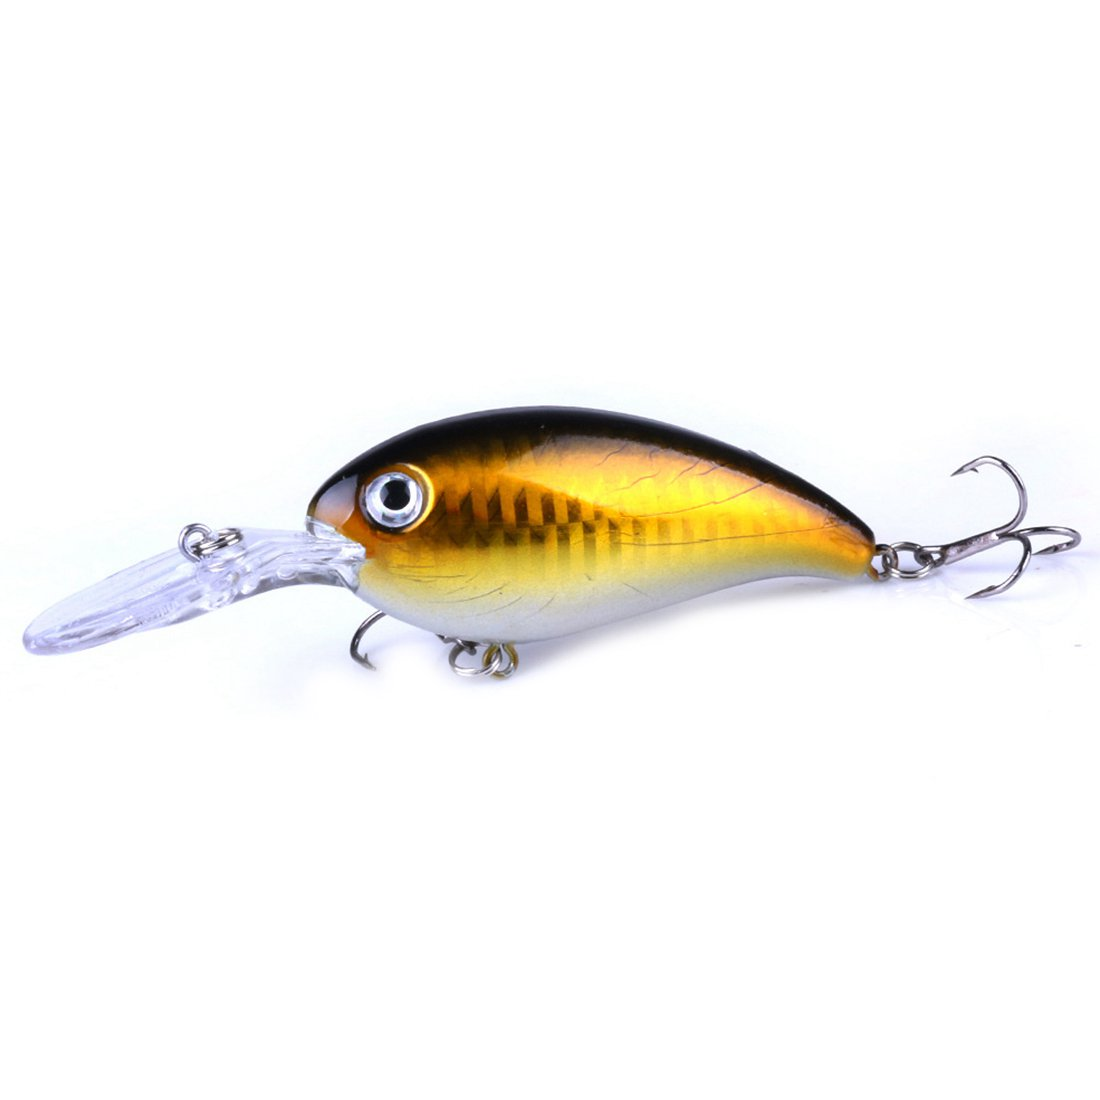 HENG JIA Sea fishing road Asian rock bait 10cm / 14g bait Luya plastic bait, Yellow Body ...